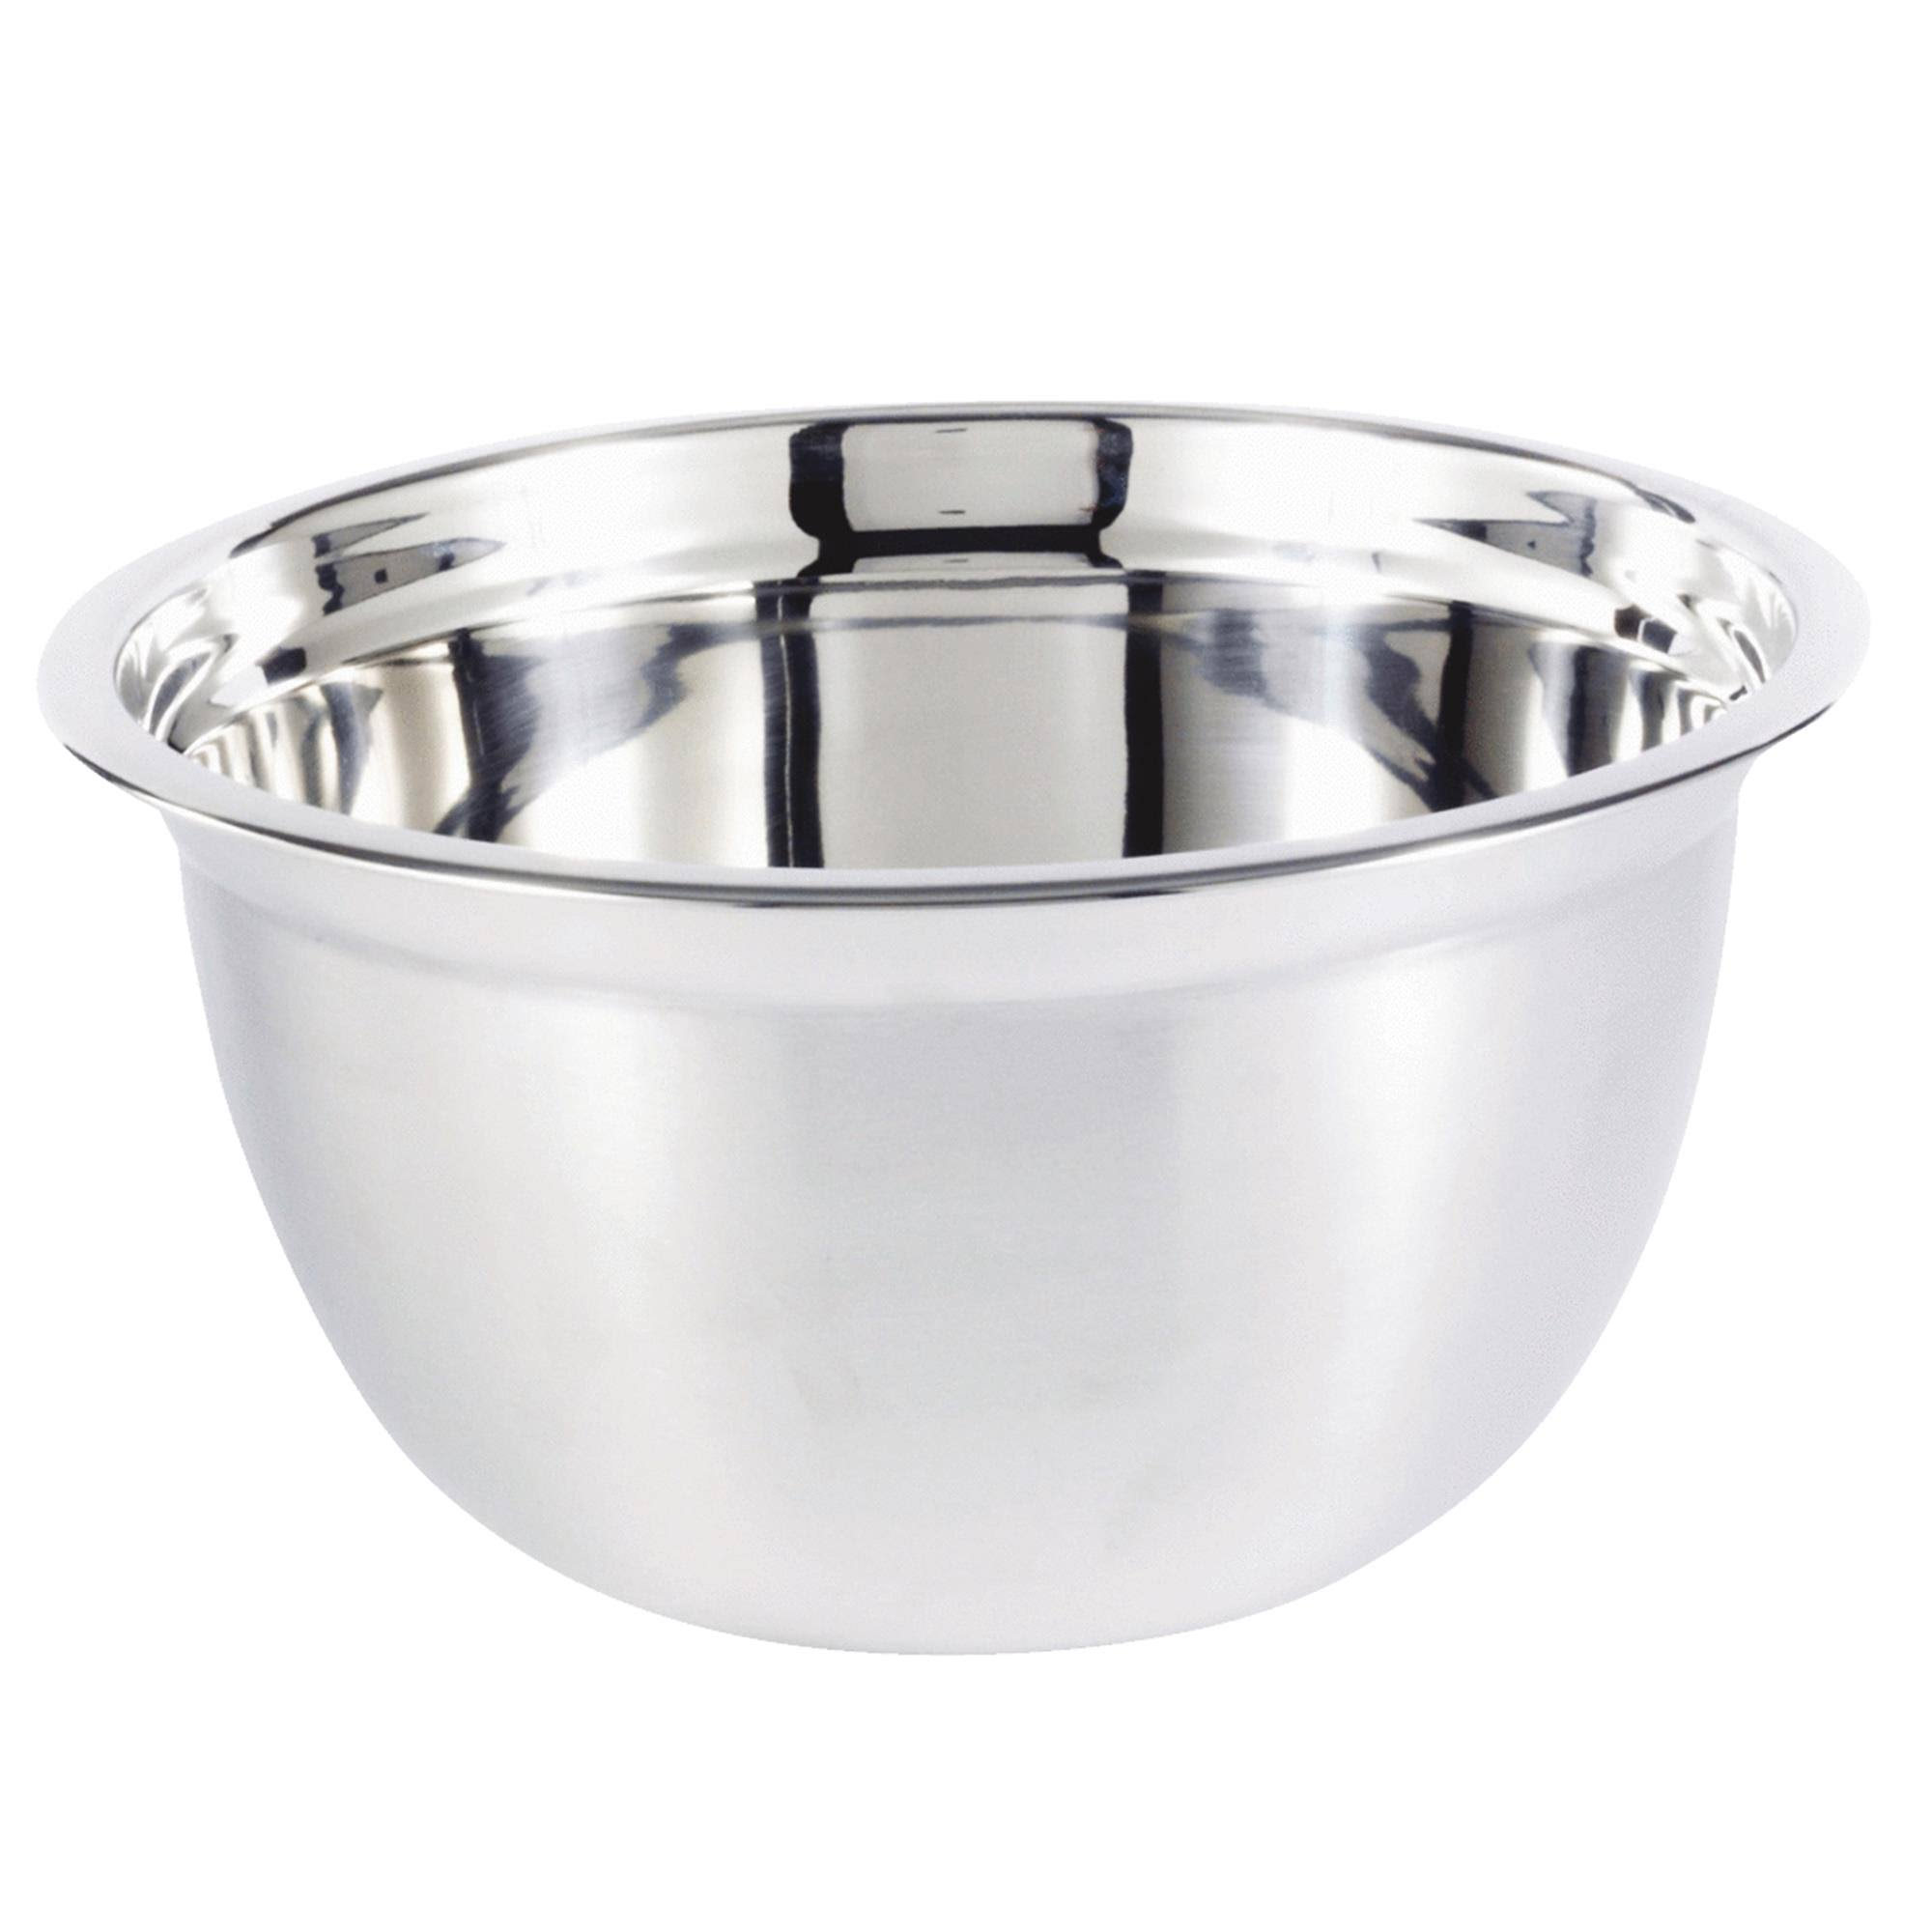 Heuck Euro Mixing Bowl - Stainless Steel, 8qt